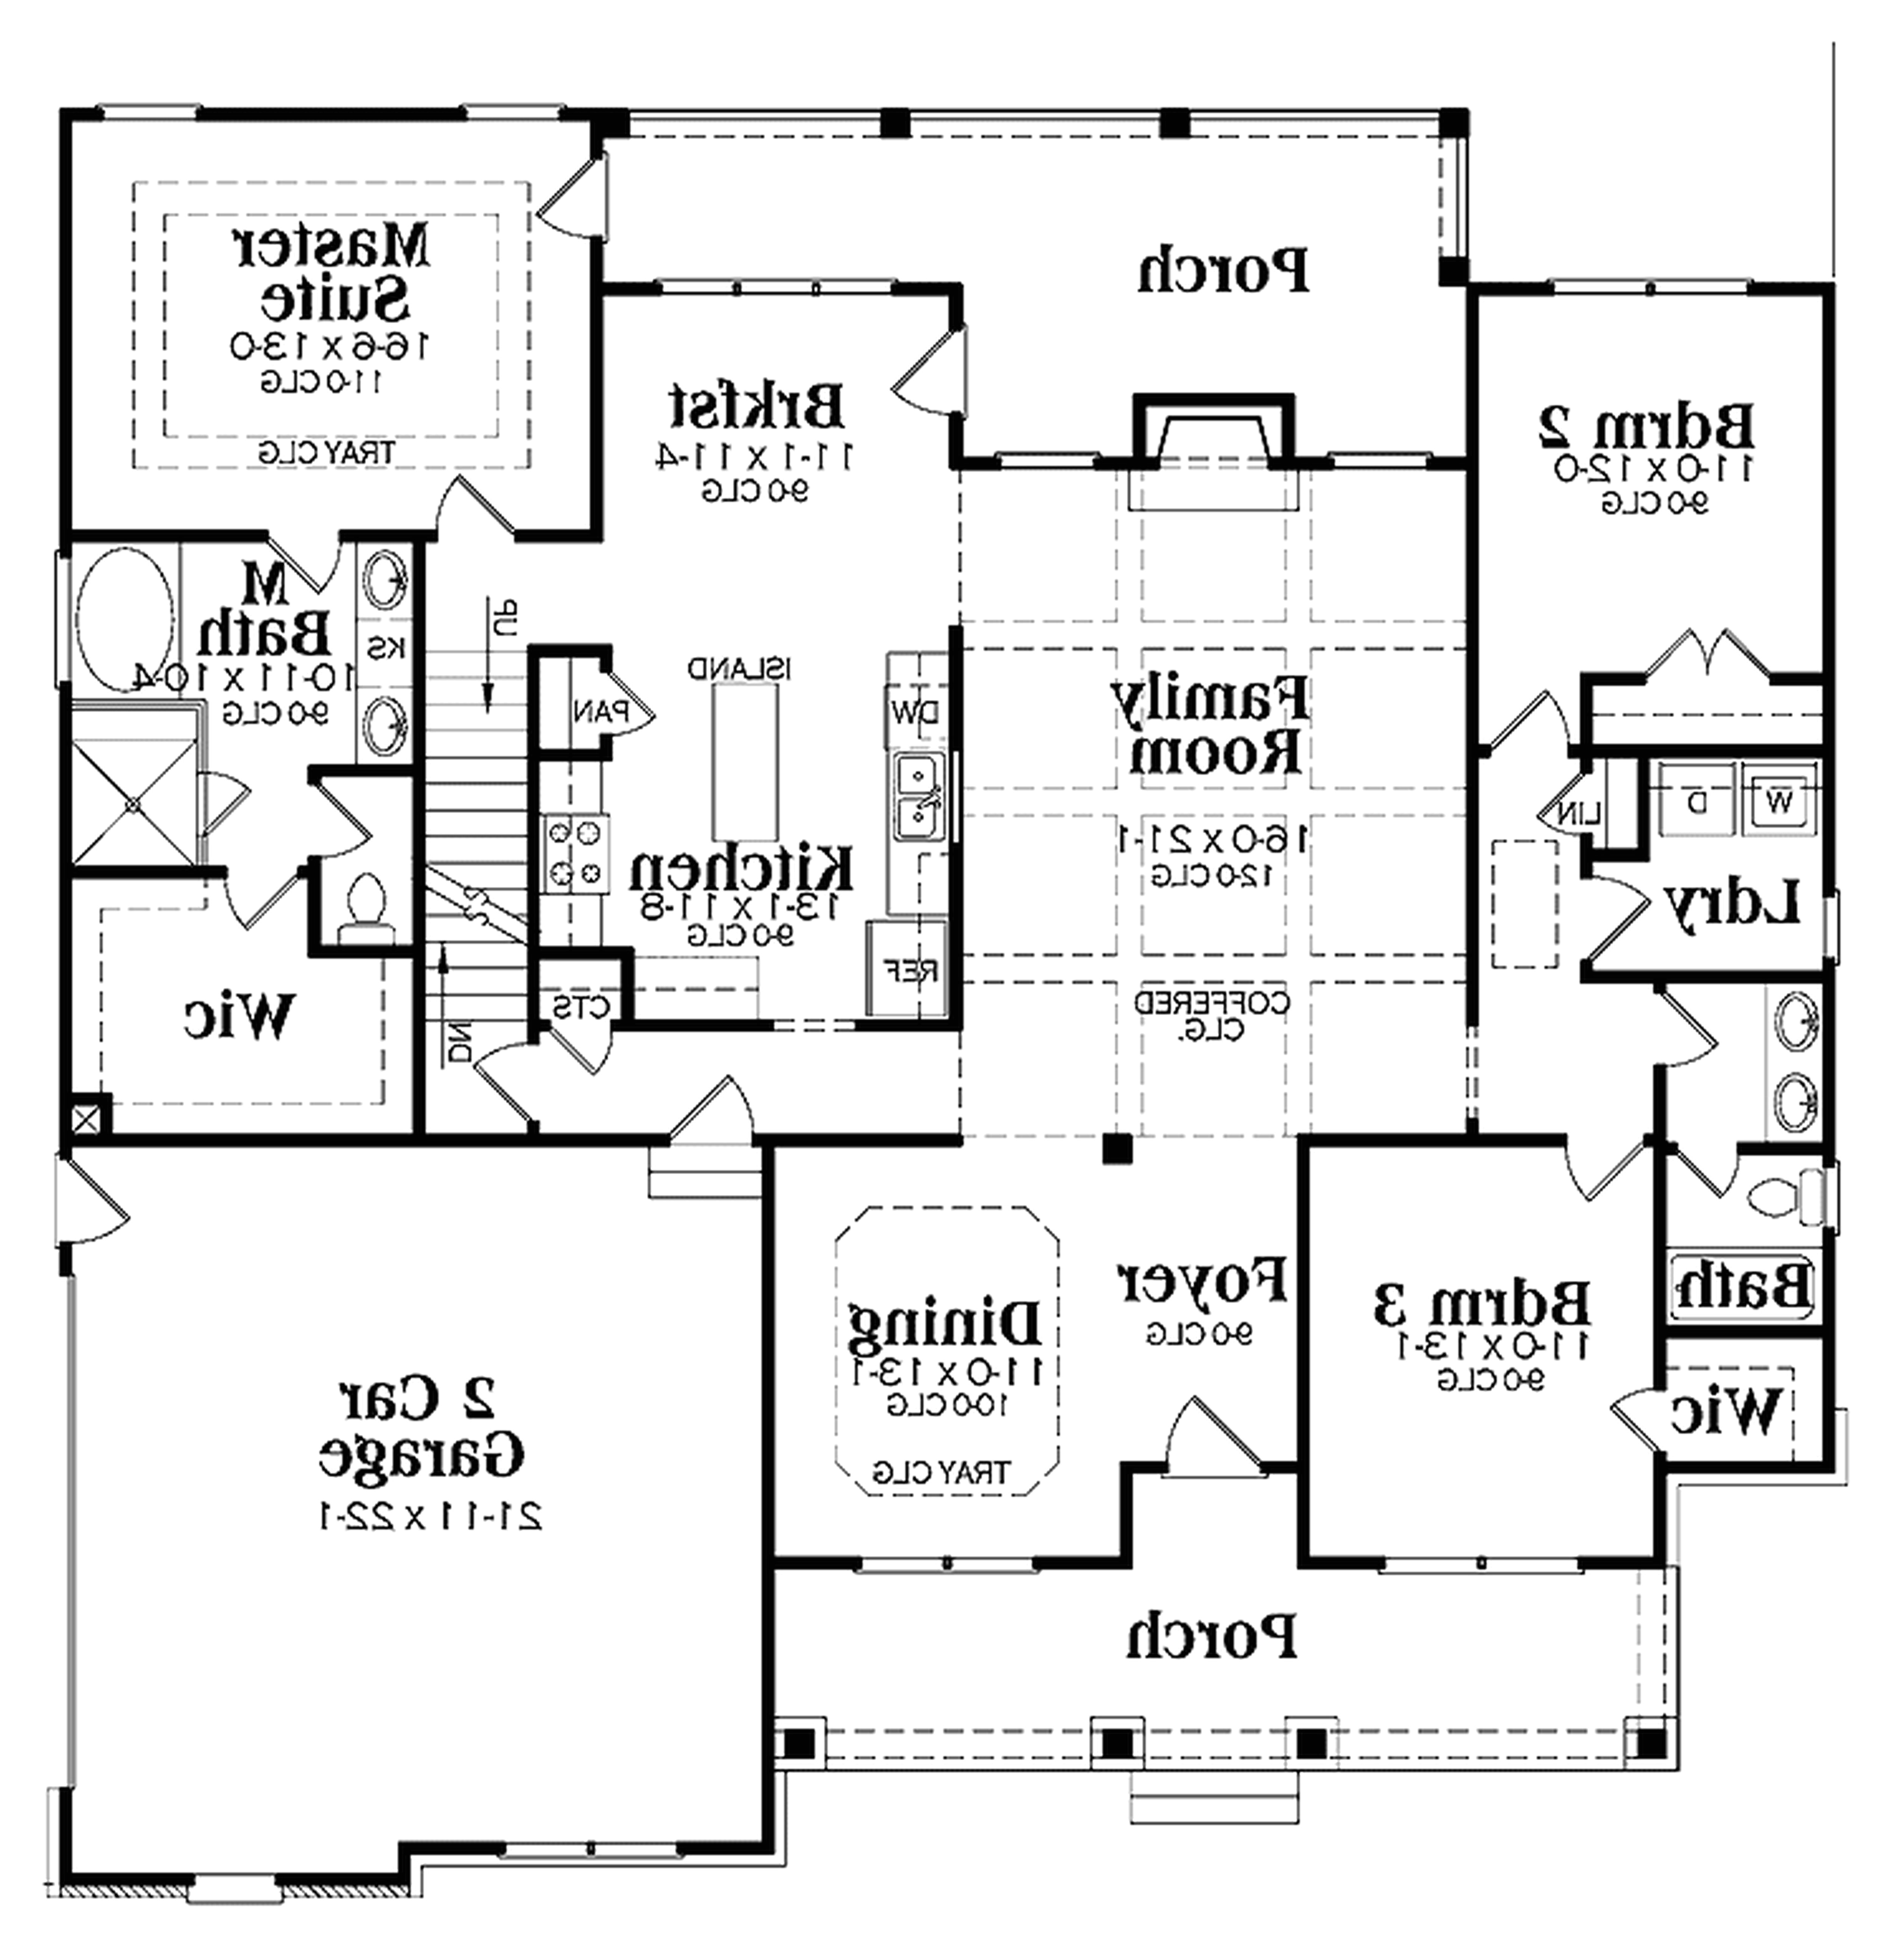 2 bedroom house plans with unfinished basement luxury 53 e level house plans with basement charming e level house